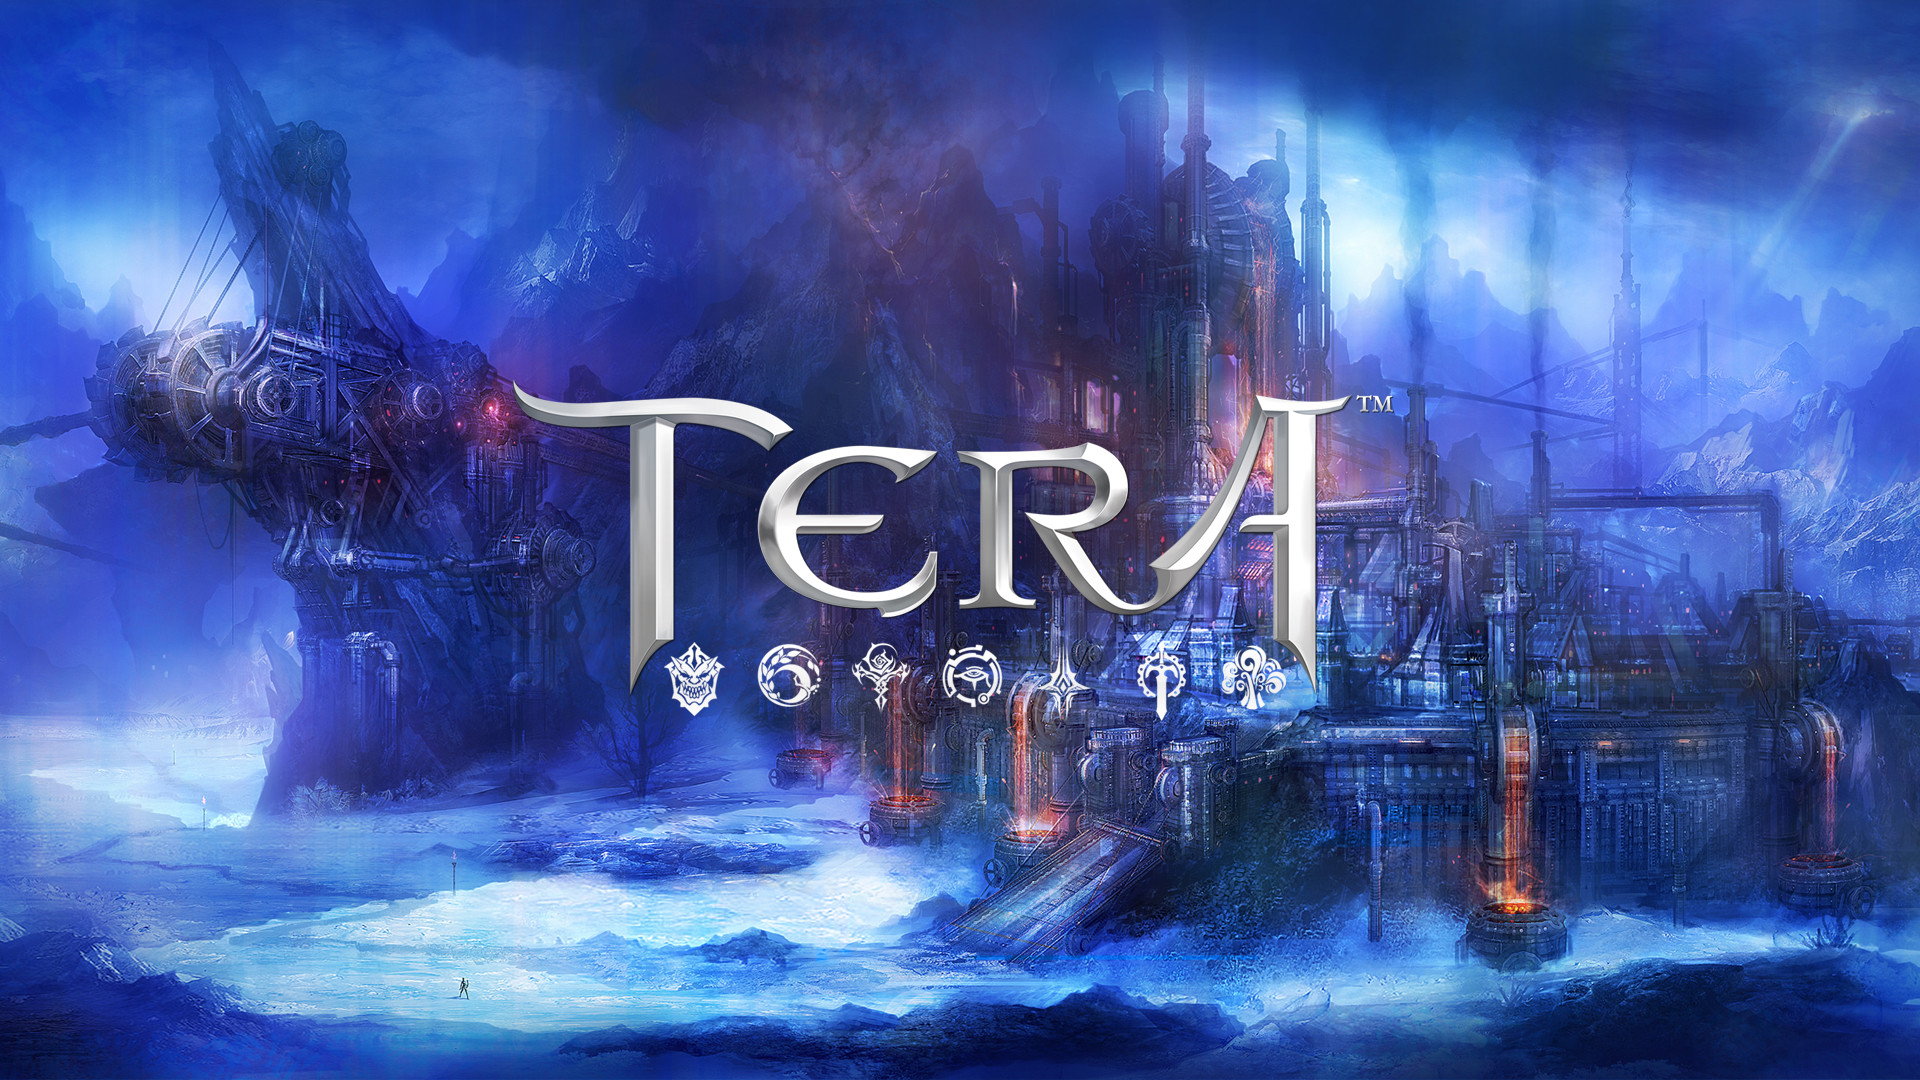 107 Tera HD Wallpapers   Backgrounds – Wallpaper Abyss